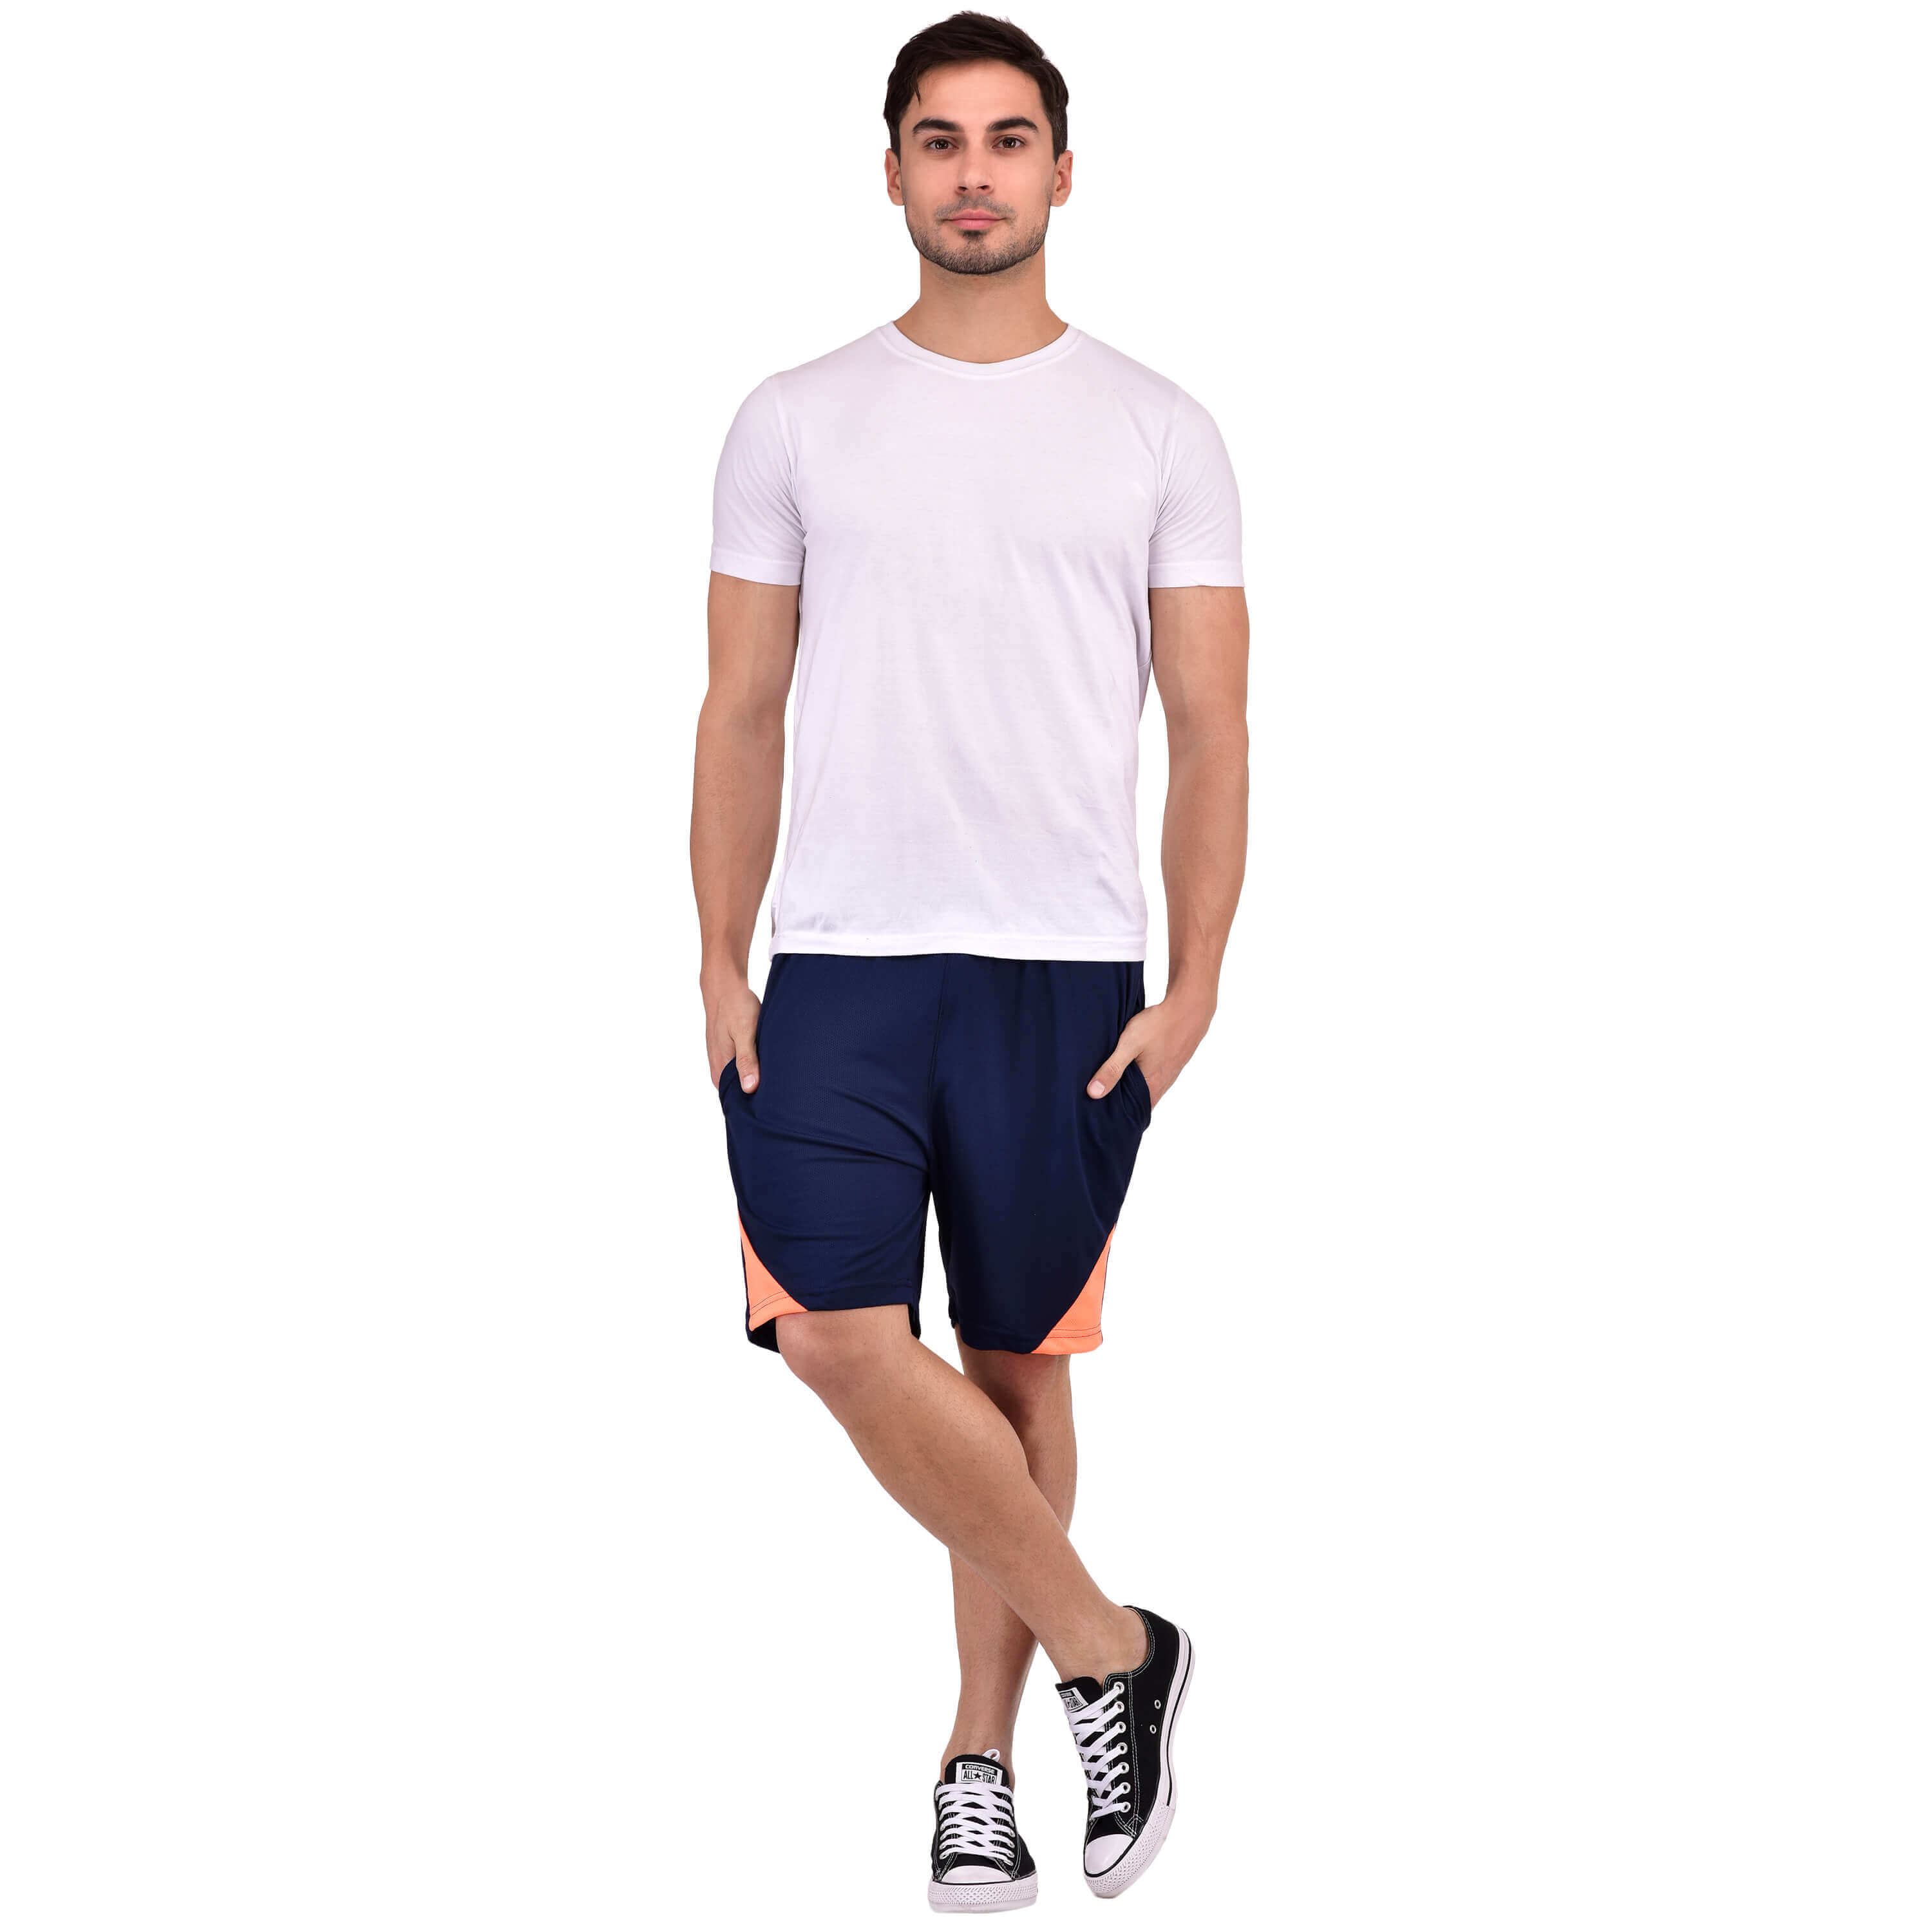 Cotton T Shirts Manufacturers in Spain